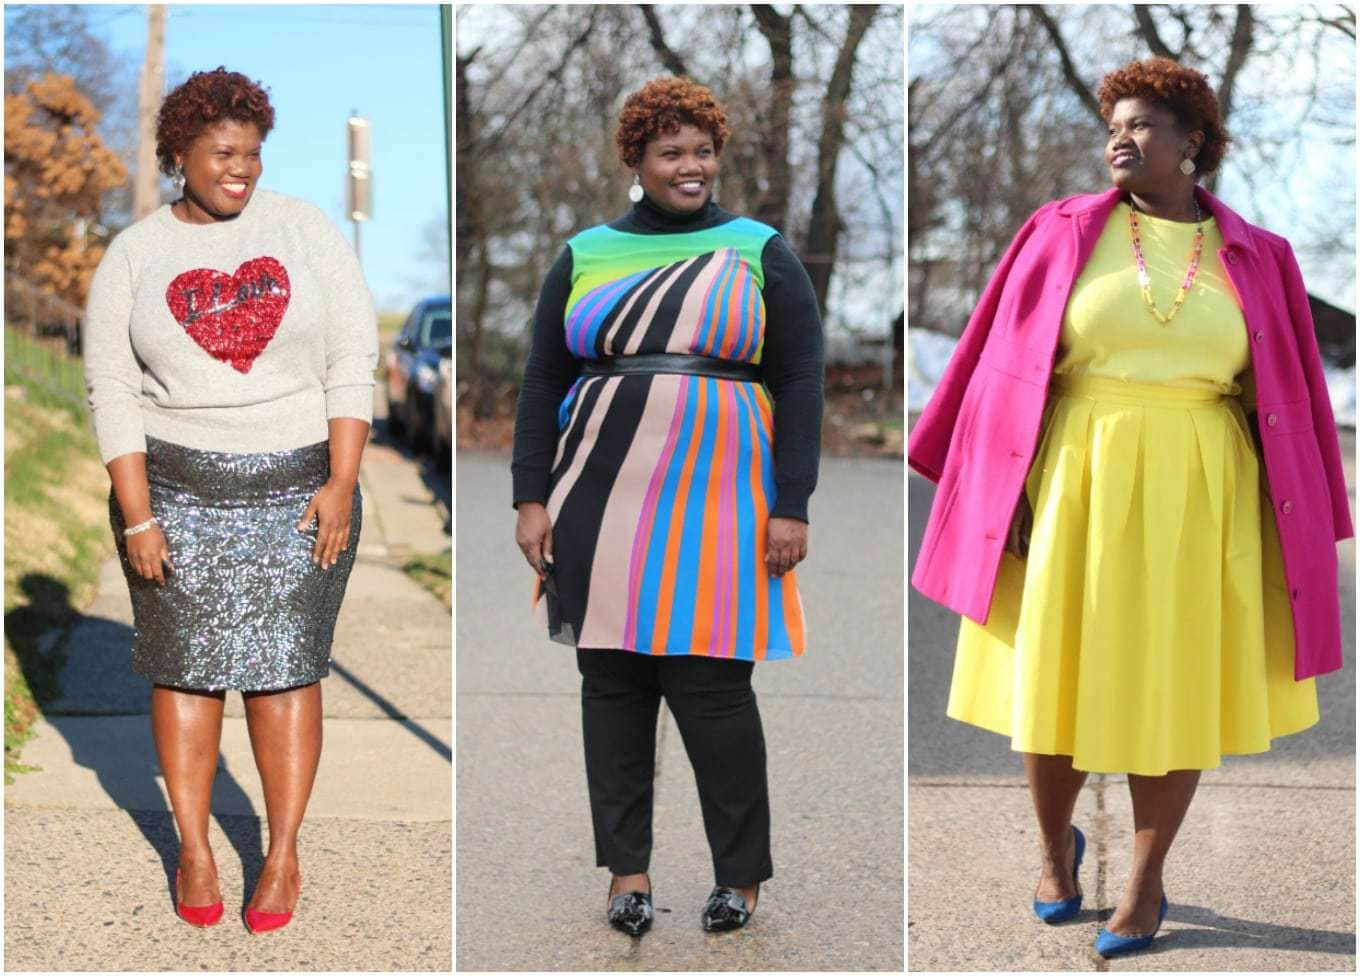 Best Over 40 Fashion Blogs - Grown and Curvy Woman - featured by popular Washington DC over 40 fashion blogger, Wardrobe Oxygen